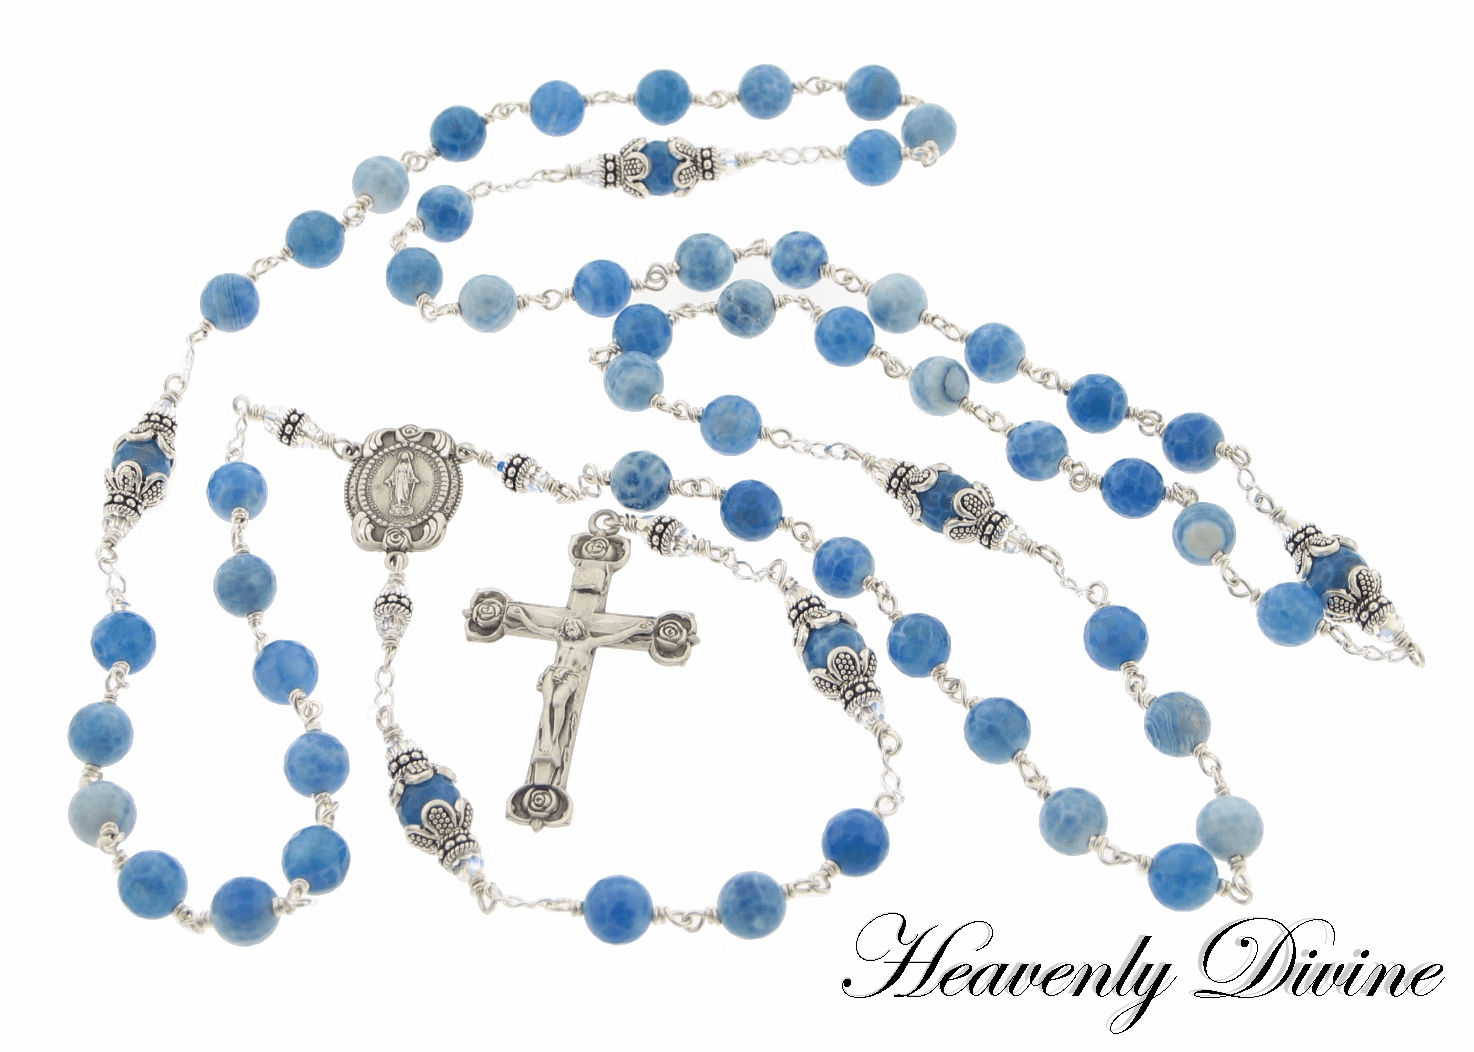 Handmade Blue Fire Agate Wire Wrapped Sterling Silver Rosary by Heavenly Divine